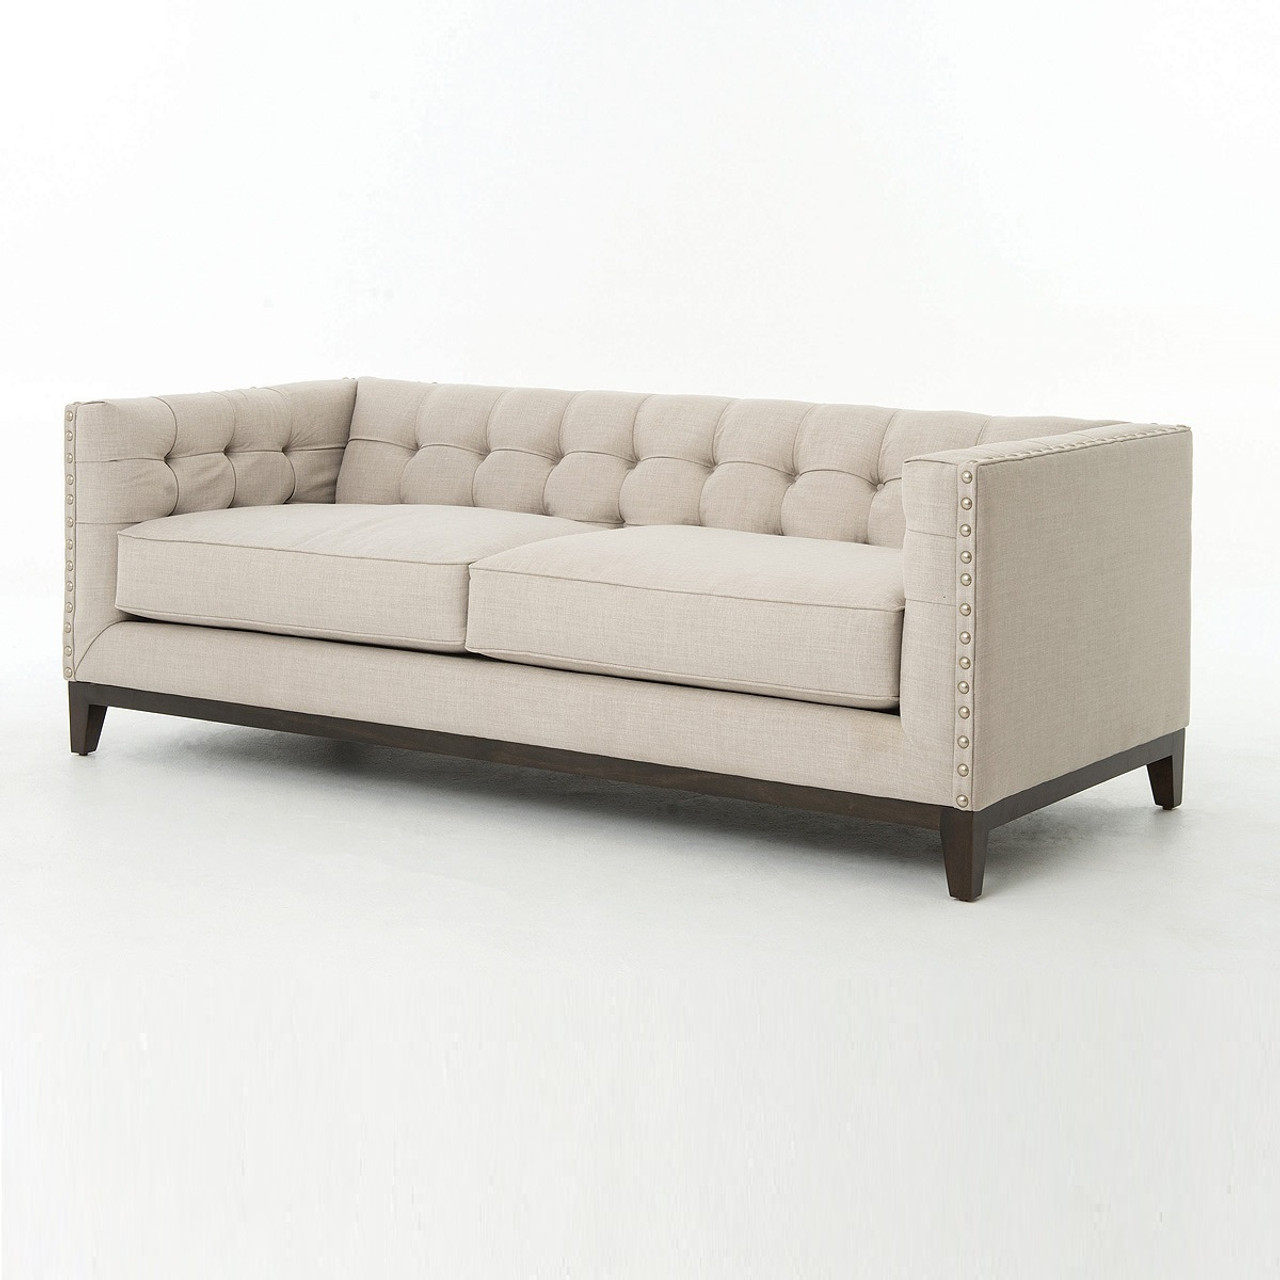 Greenwich modern tufted linen sofa atelier greenwich nailhead sofa